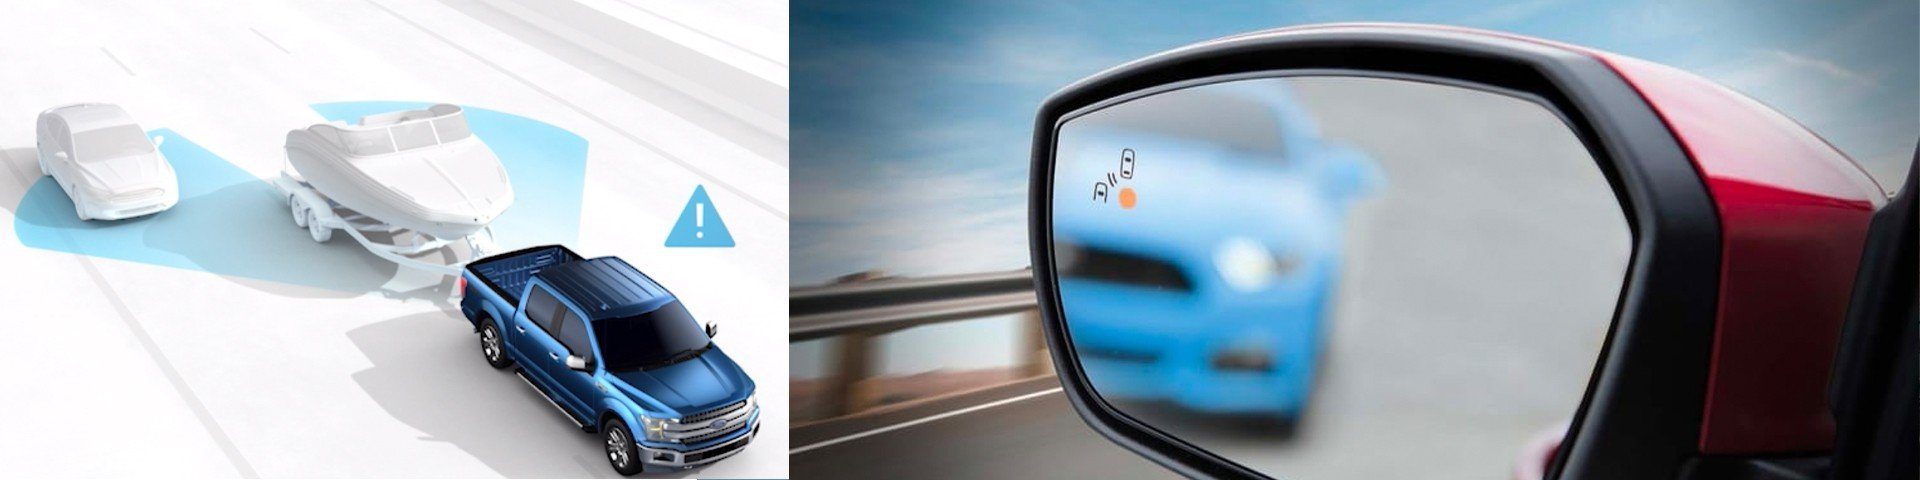 Ford driver assist features